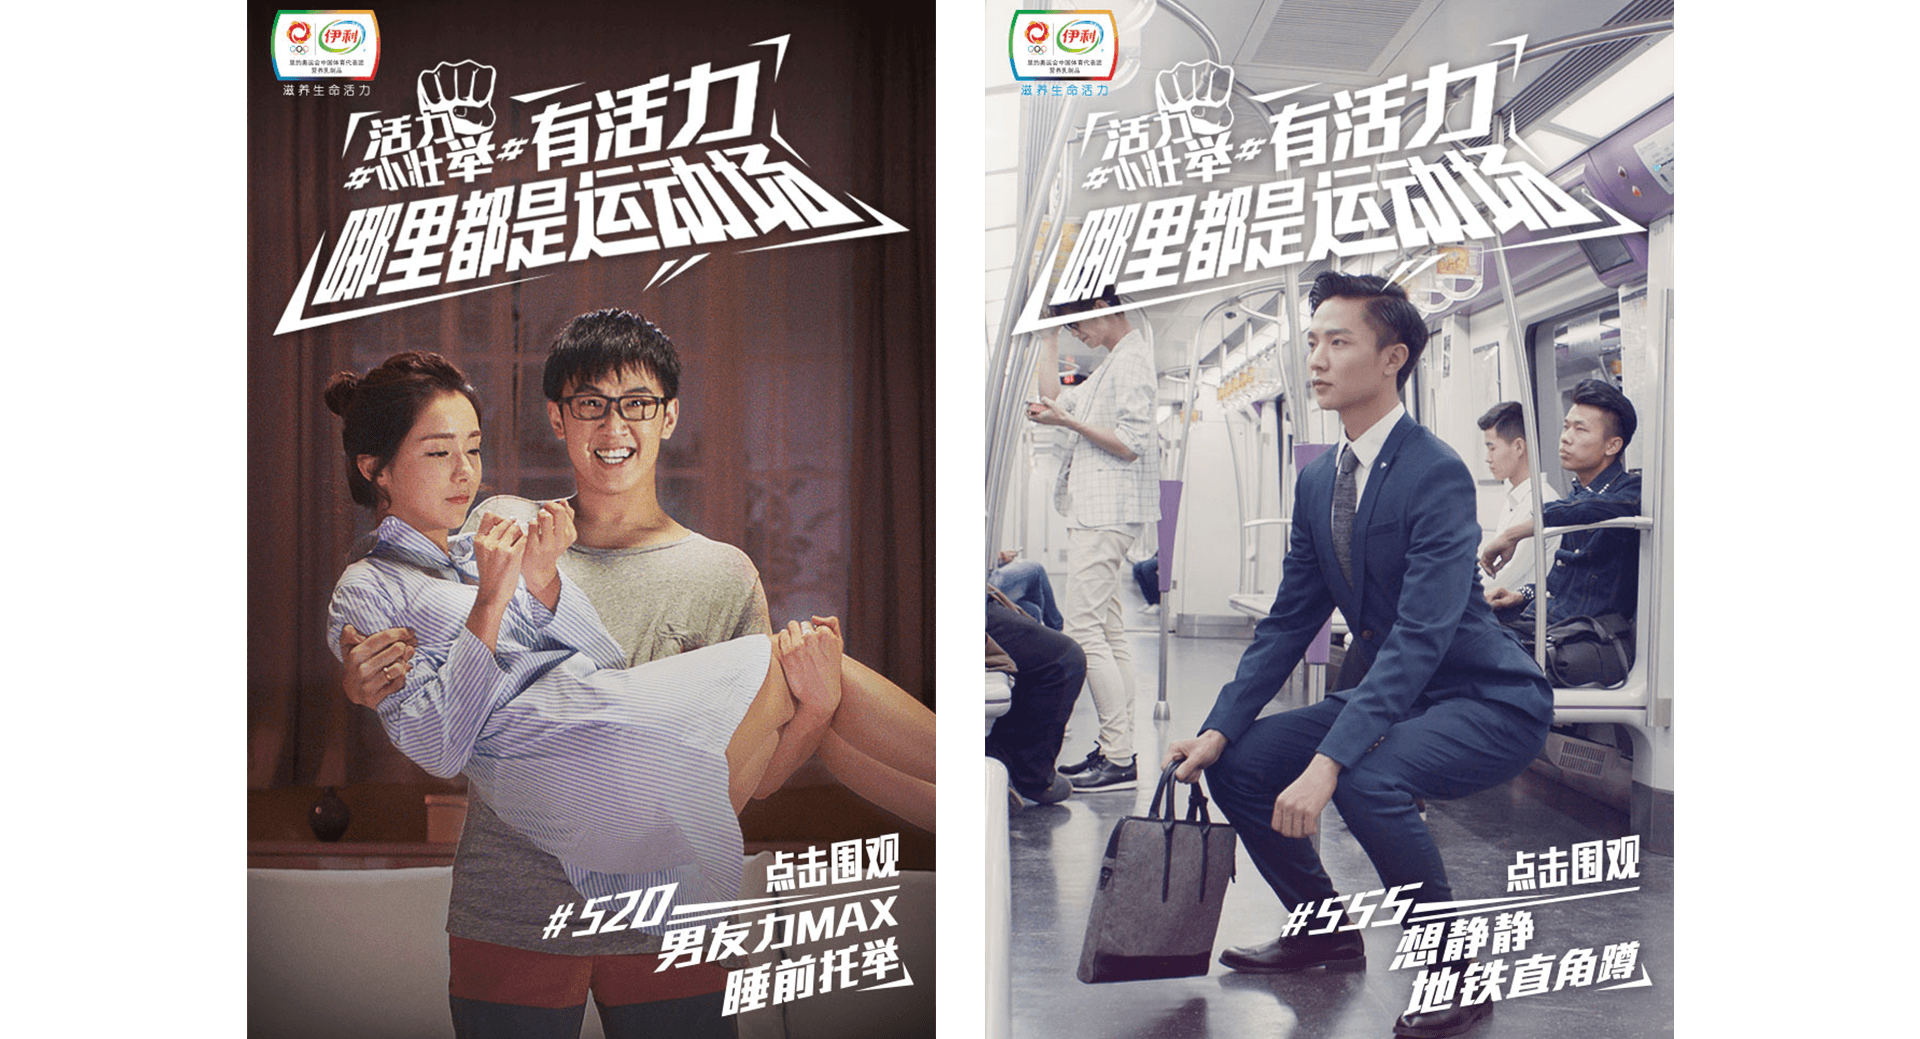 180607-Posters 2-2.png